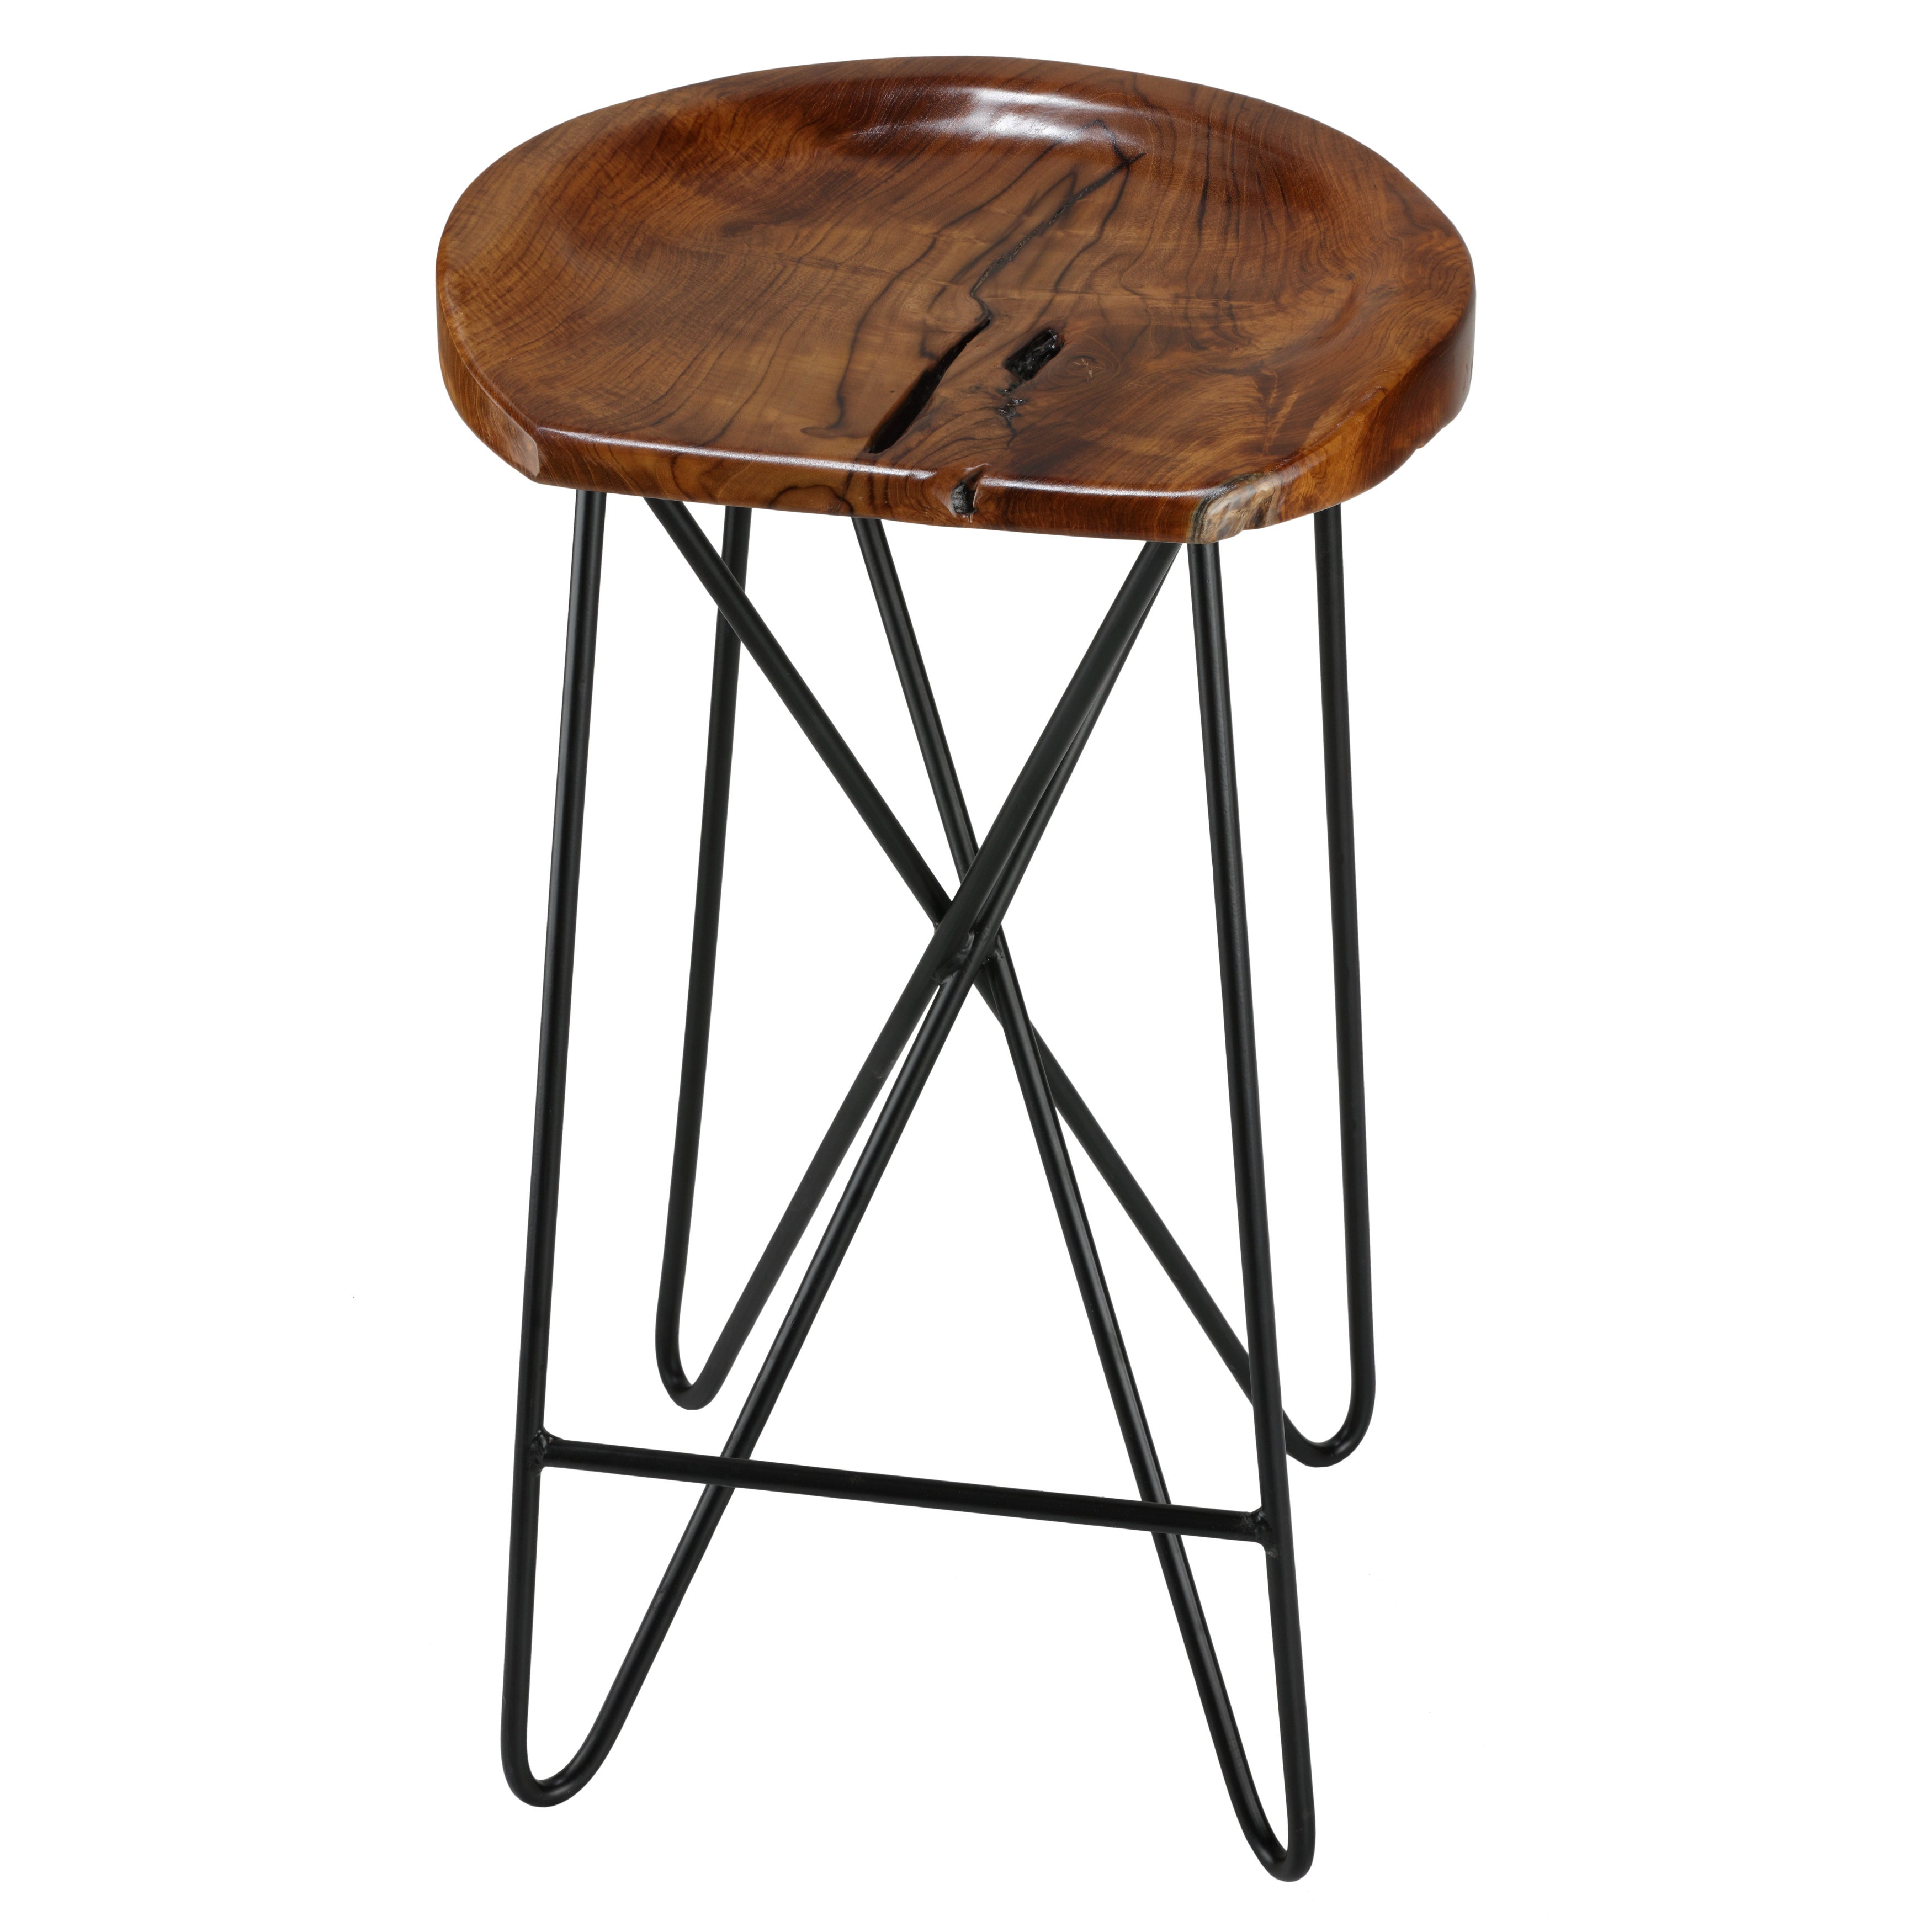 Stupendous Bare Decor Aloha Backless Teak Counter Stool With Metal Legs Gmtry Best Dining Table And Chair Ideas Images Gmtryco